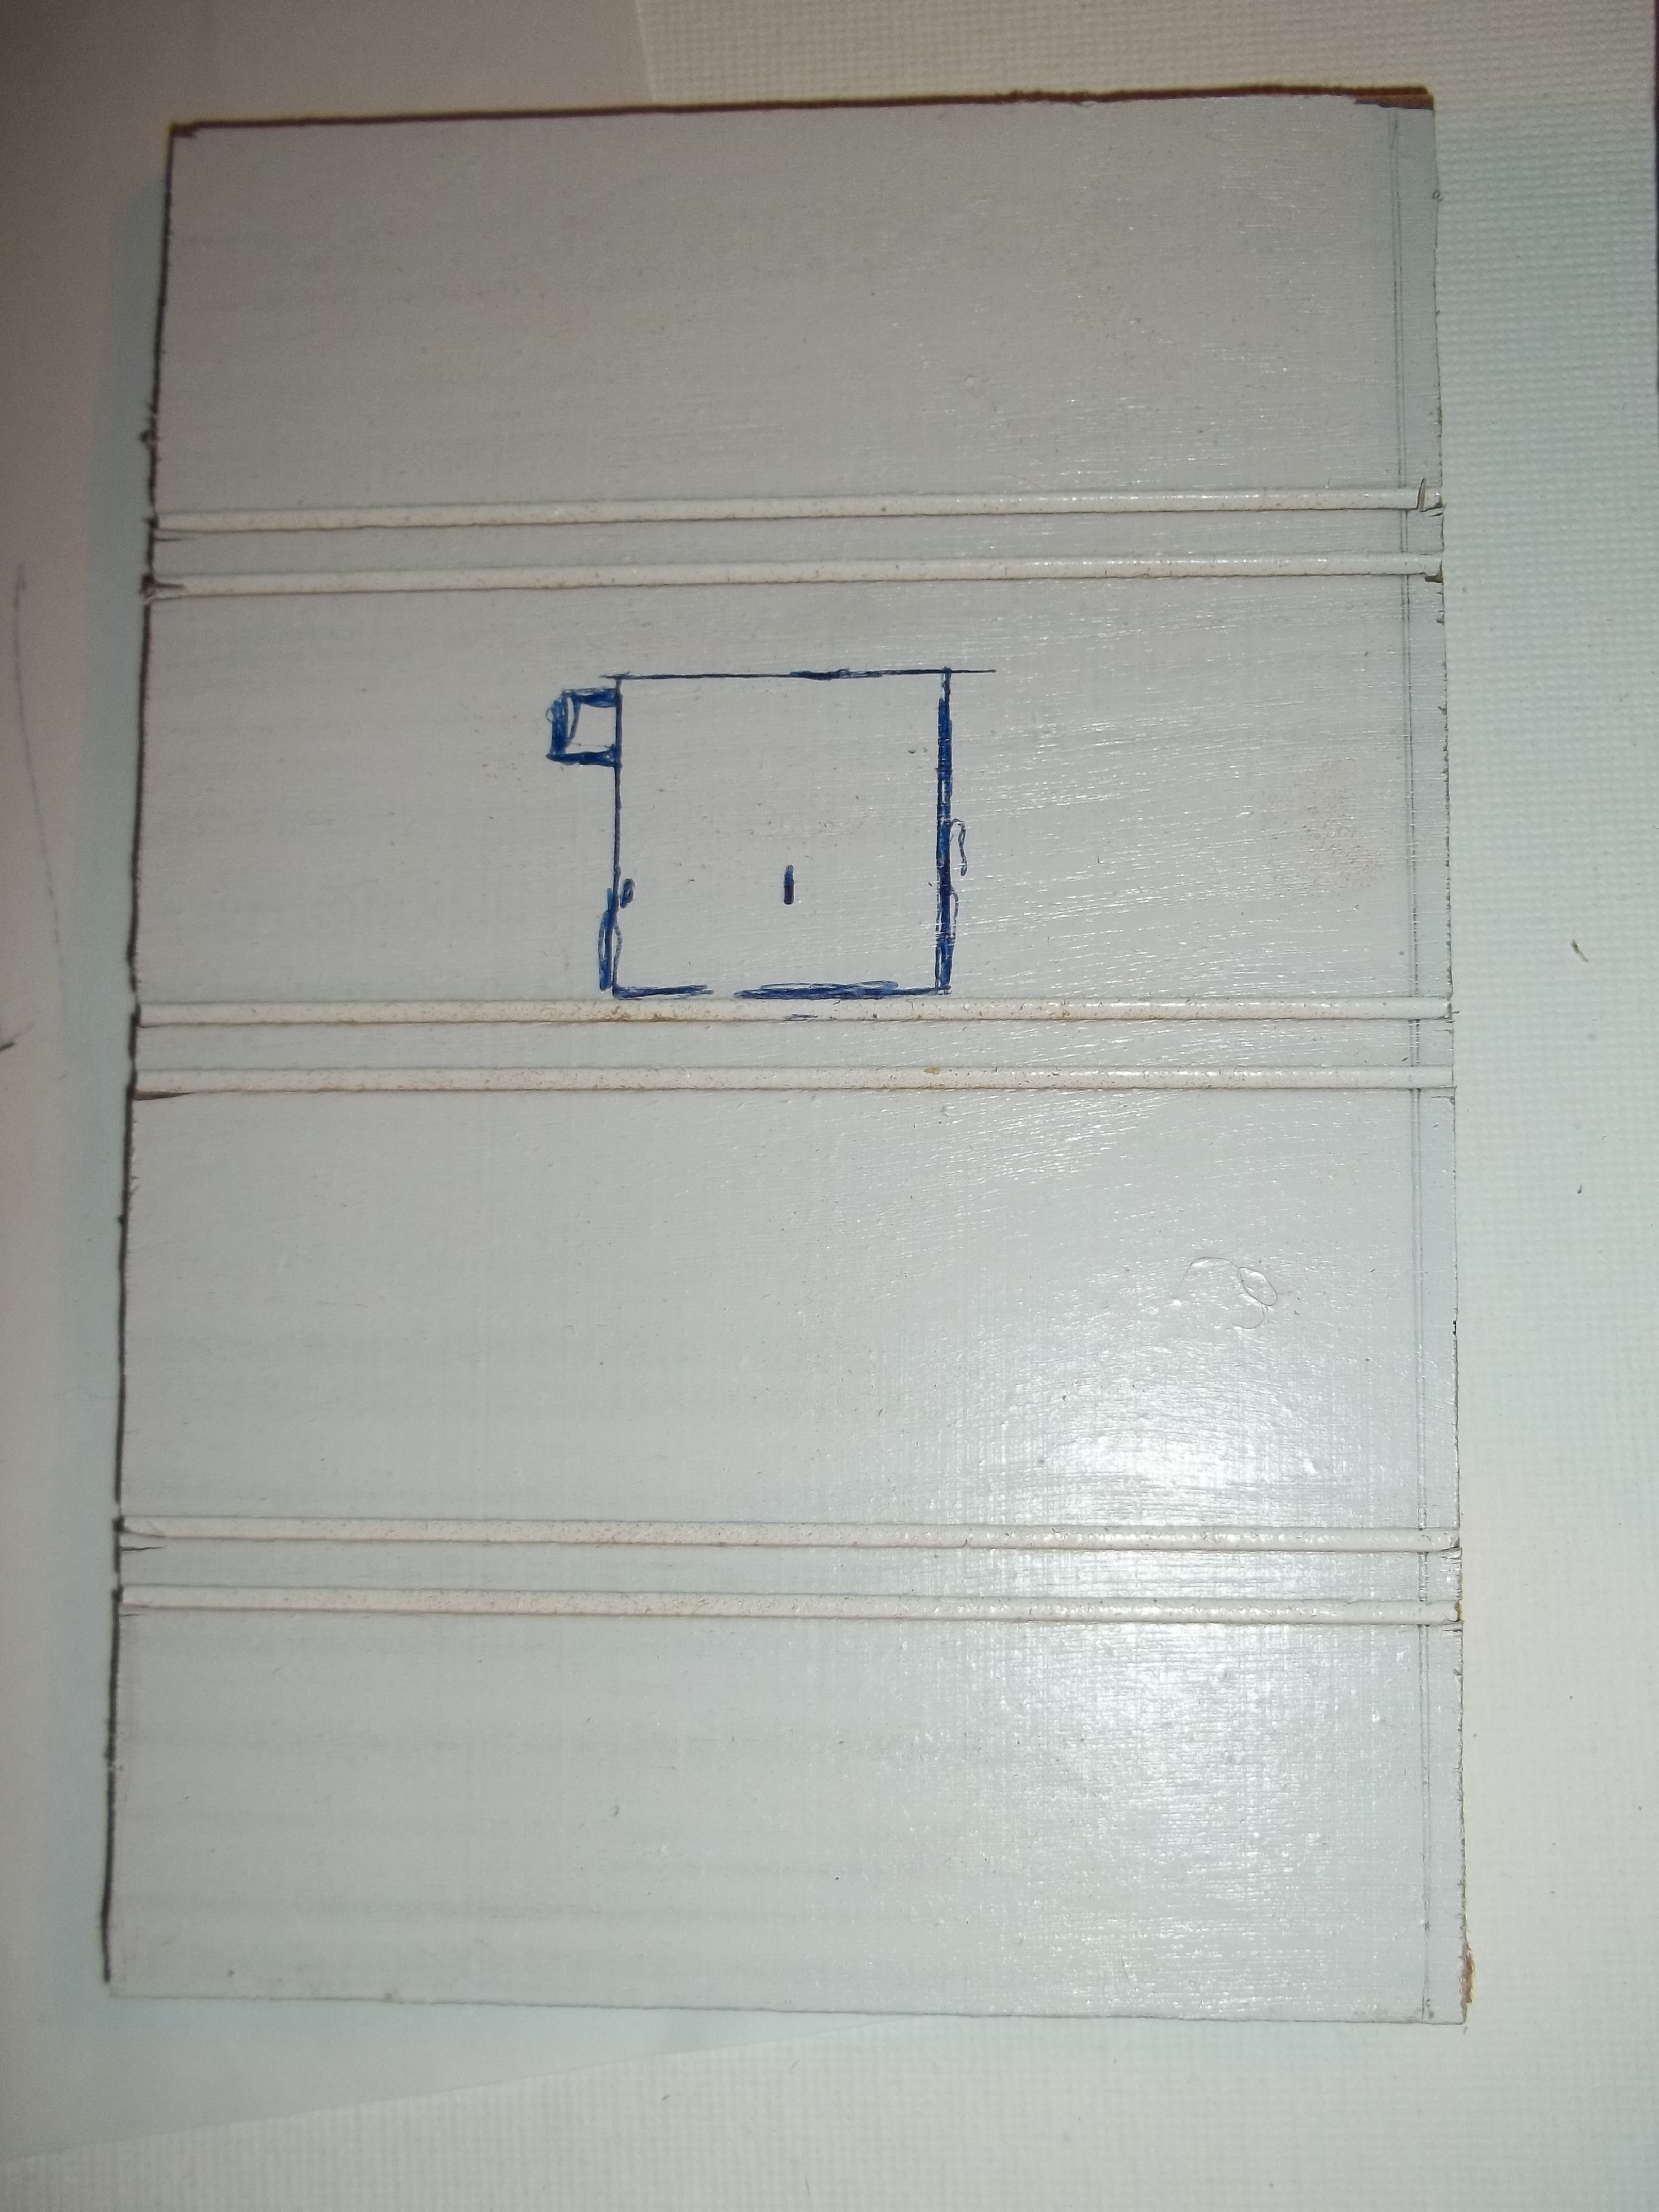 Picture of Further Box Preparation: PIR Sensor Slot and Front Piece